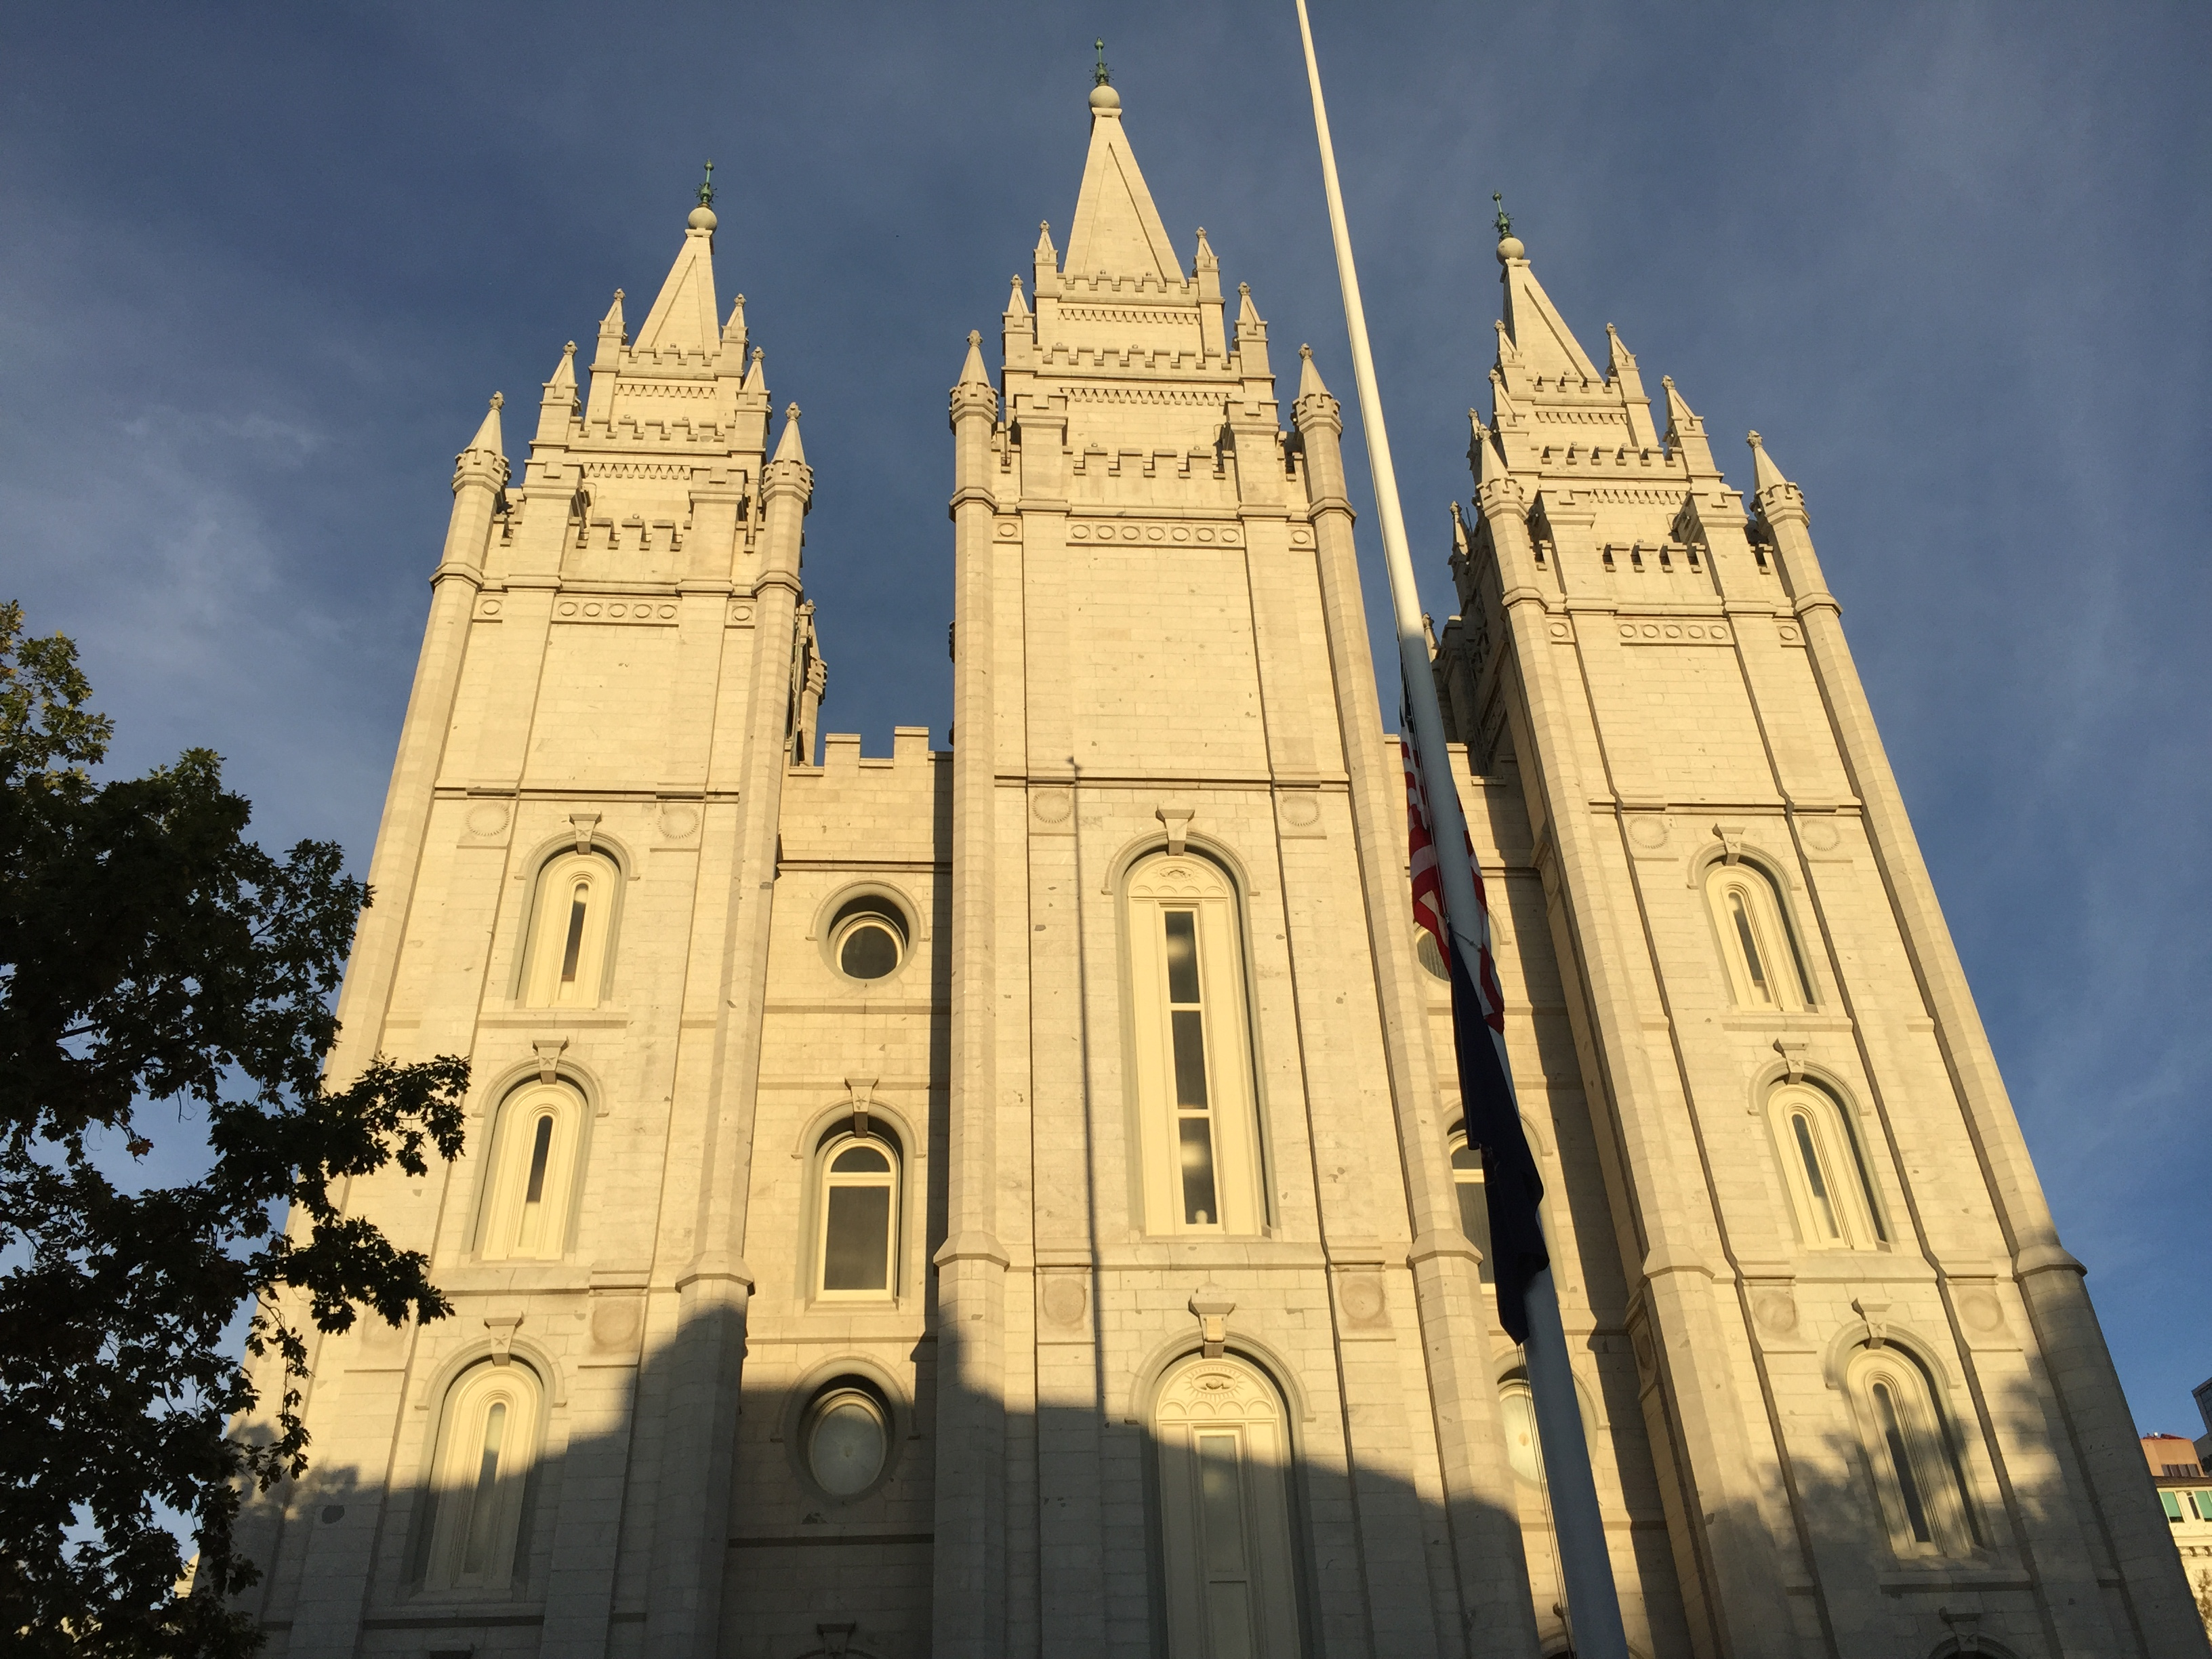 an overview of the mormonism and the mormons in the church of jesus christ of latter day saints 2007-12-18 foxnewscom compiled a list of 21 questions representing some widely held beliefs and misconceptions about mormonism and posed them to the church of jesus christ of latter-day saints.